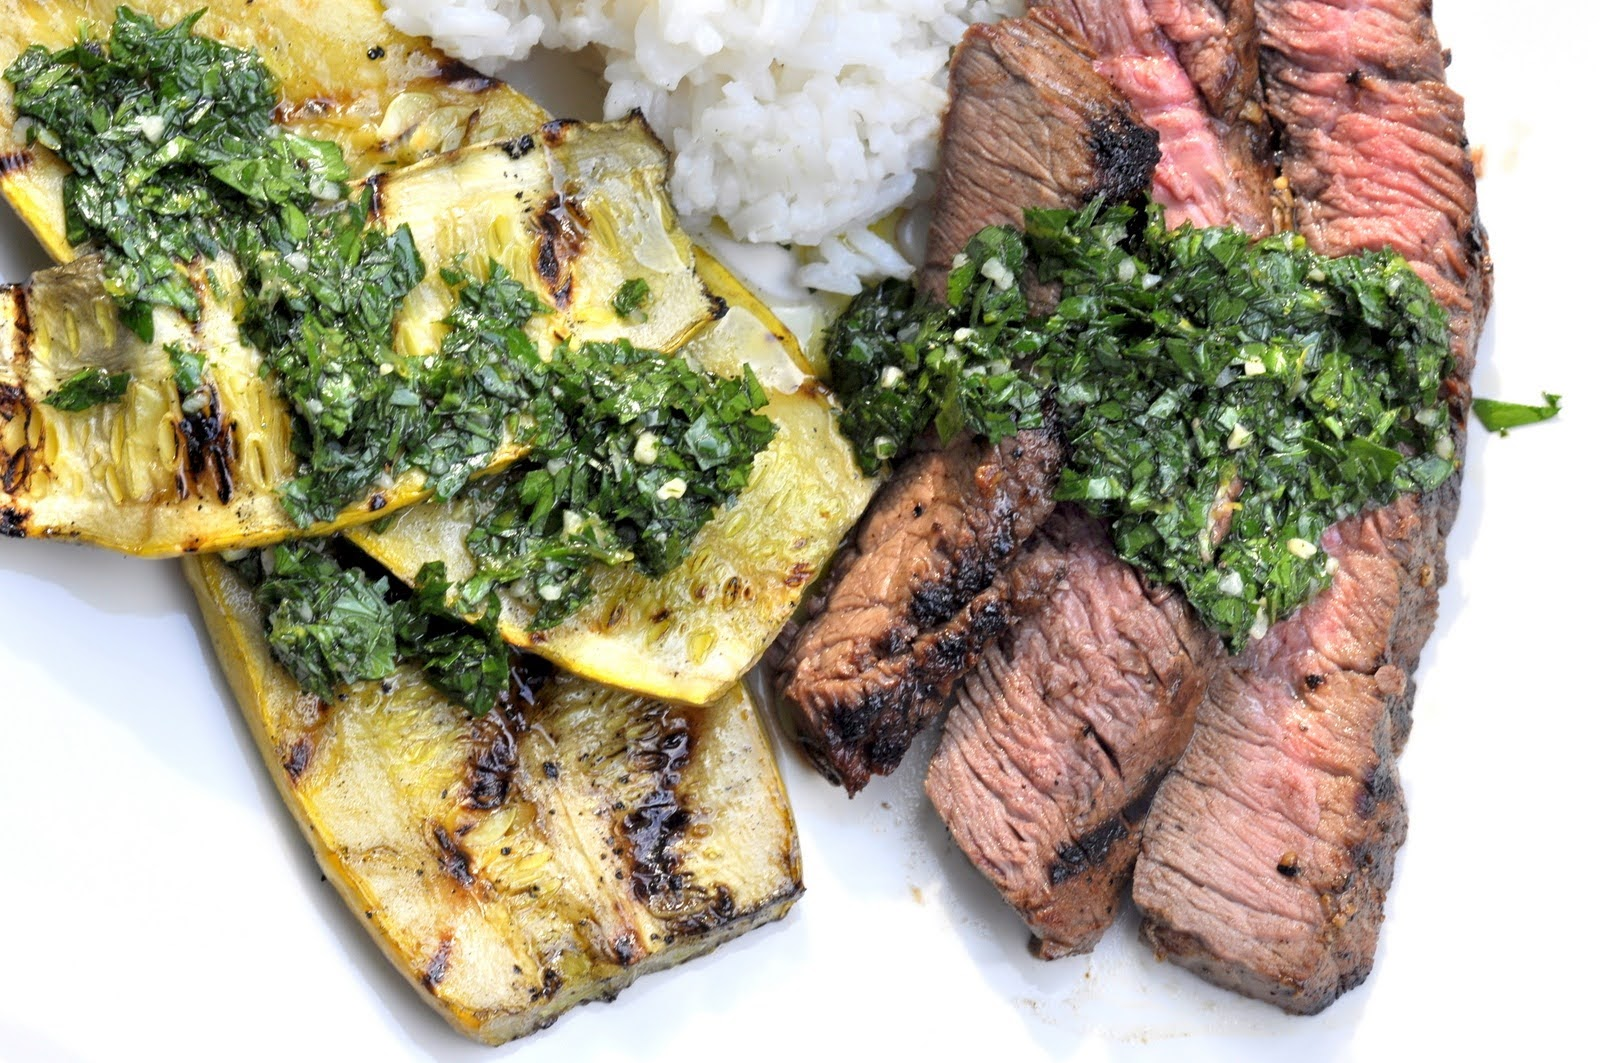 Grilled Steak and Squash with Gremolata Sauce | Taste As You Go